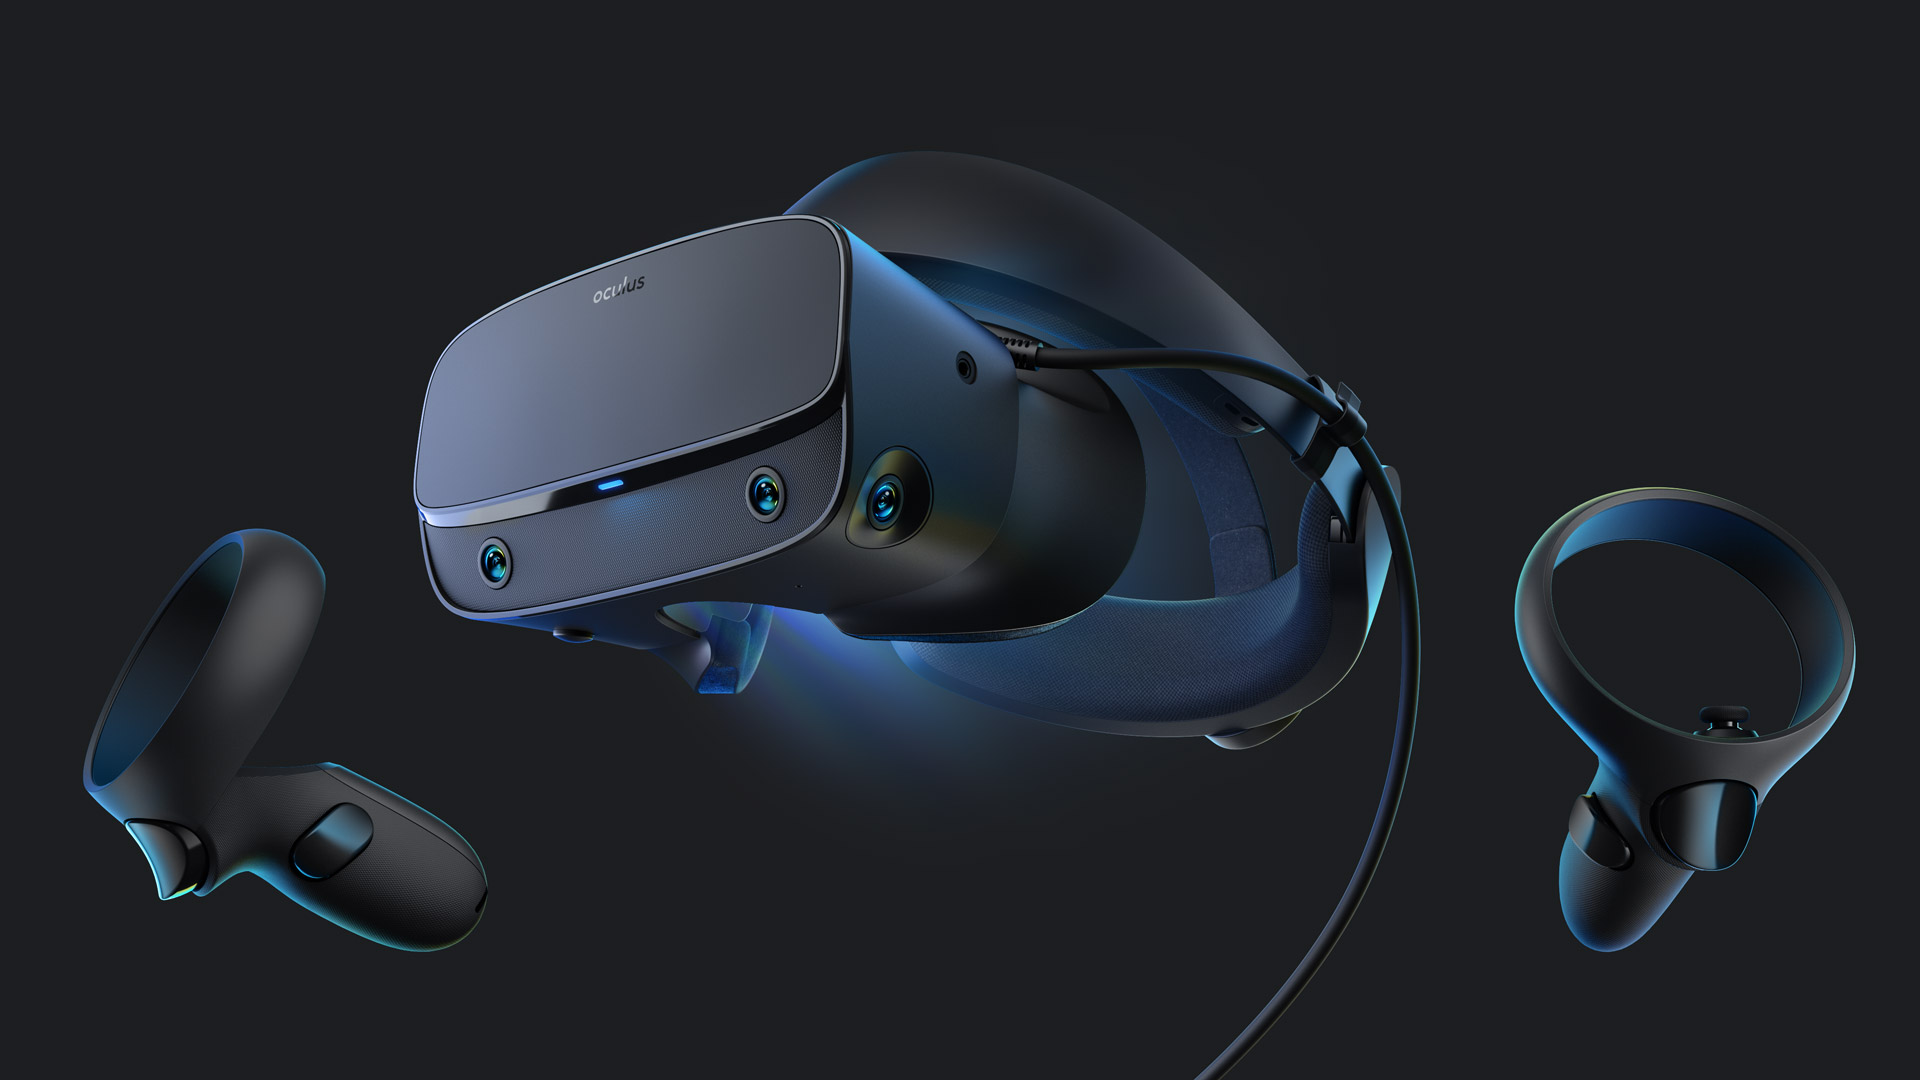 Oculus Rift S Revealed with Inside-out Tracking, Resolution Bump, & New Ergonomics